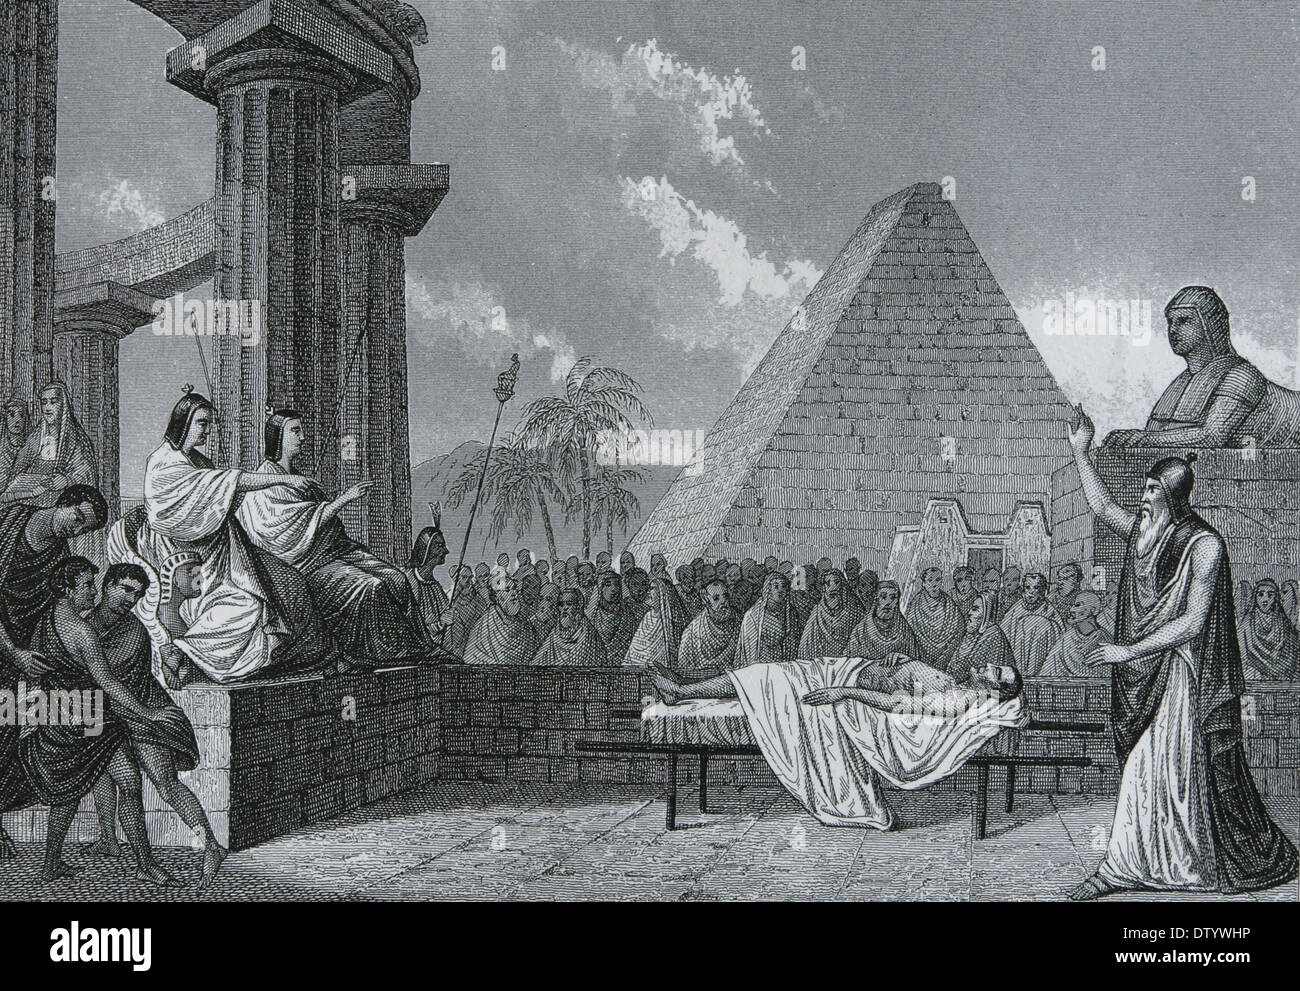 Egypt. court of the dead. Ancient Times. Engraving. Iconographic Enclyclopaedia of science, Literature and Art. 19th century - Stock Image